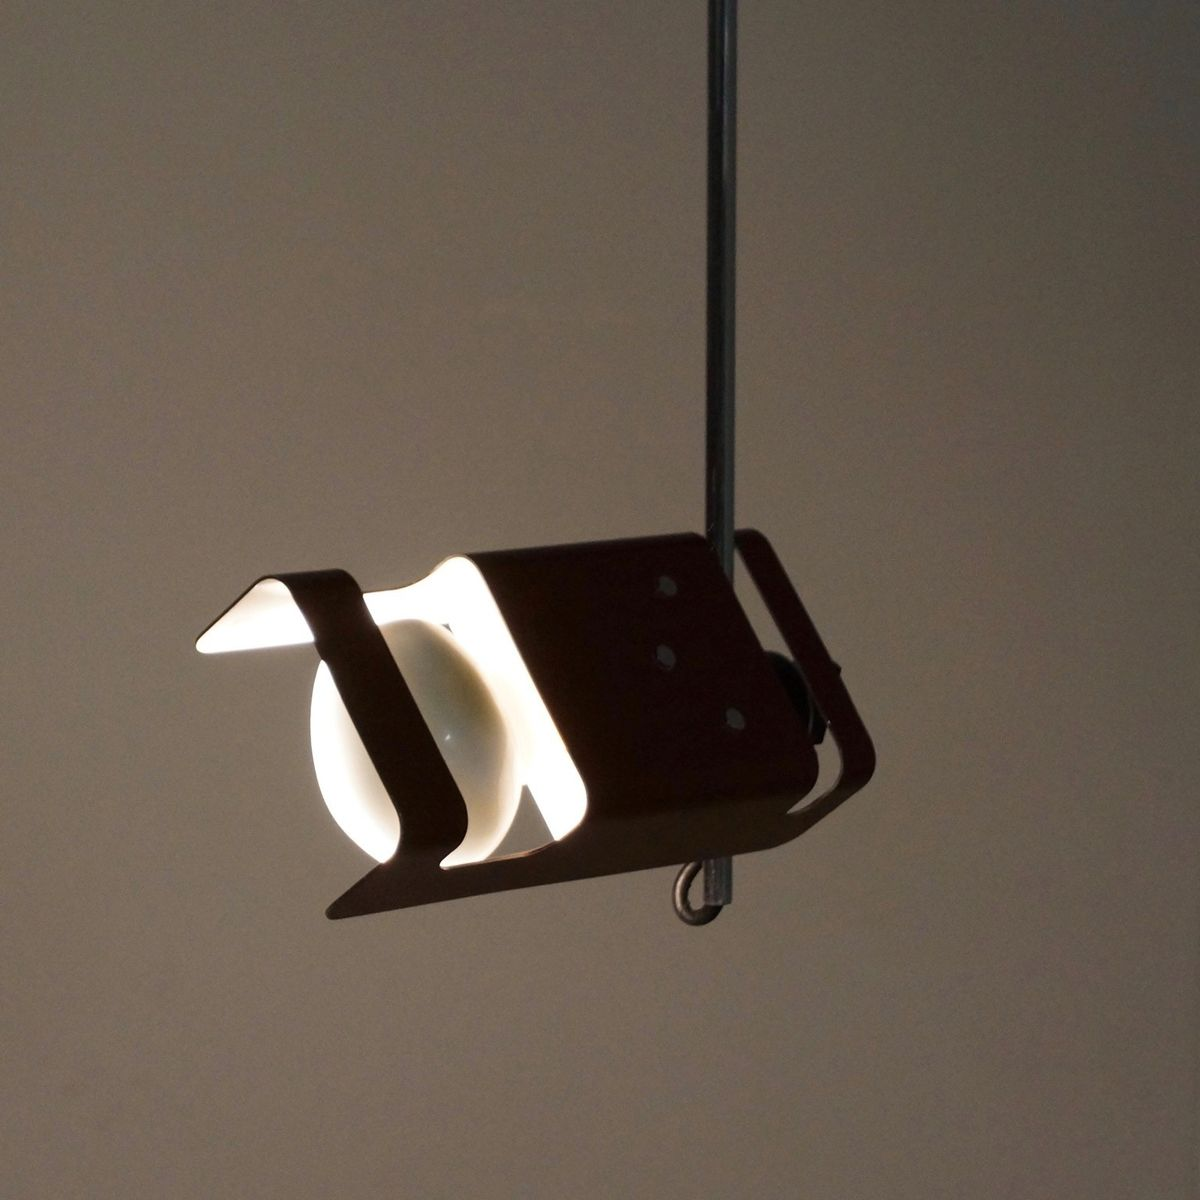 Spider lamp by joe colombo for oluce 1967 for sale at pamono for What is a spider lamp